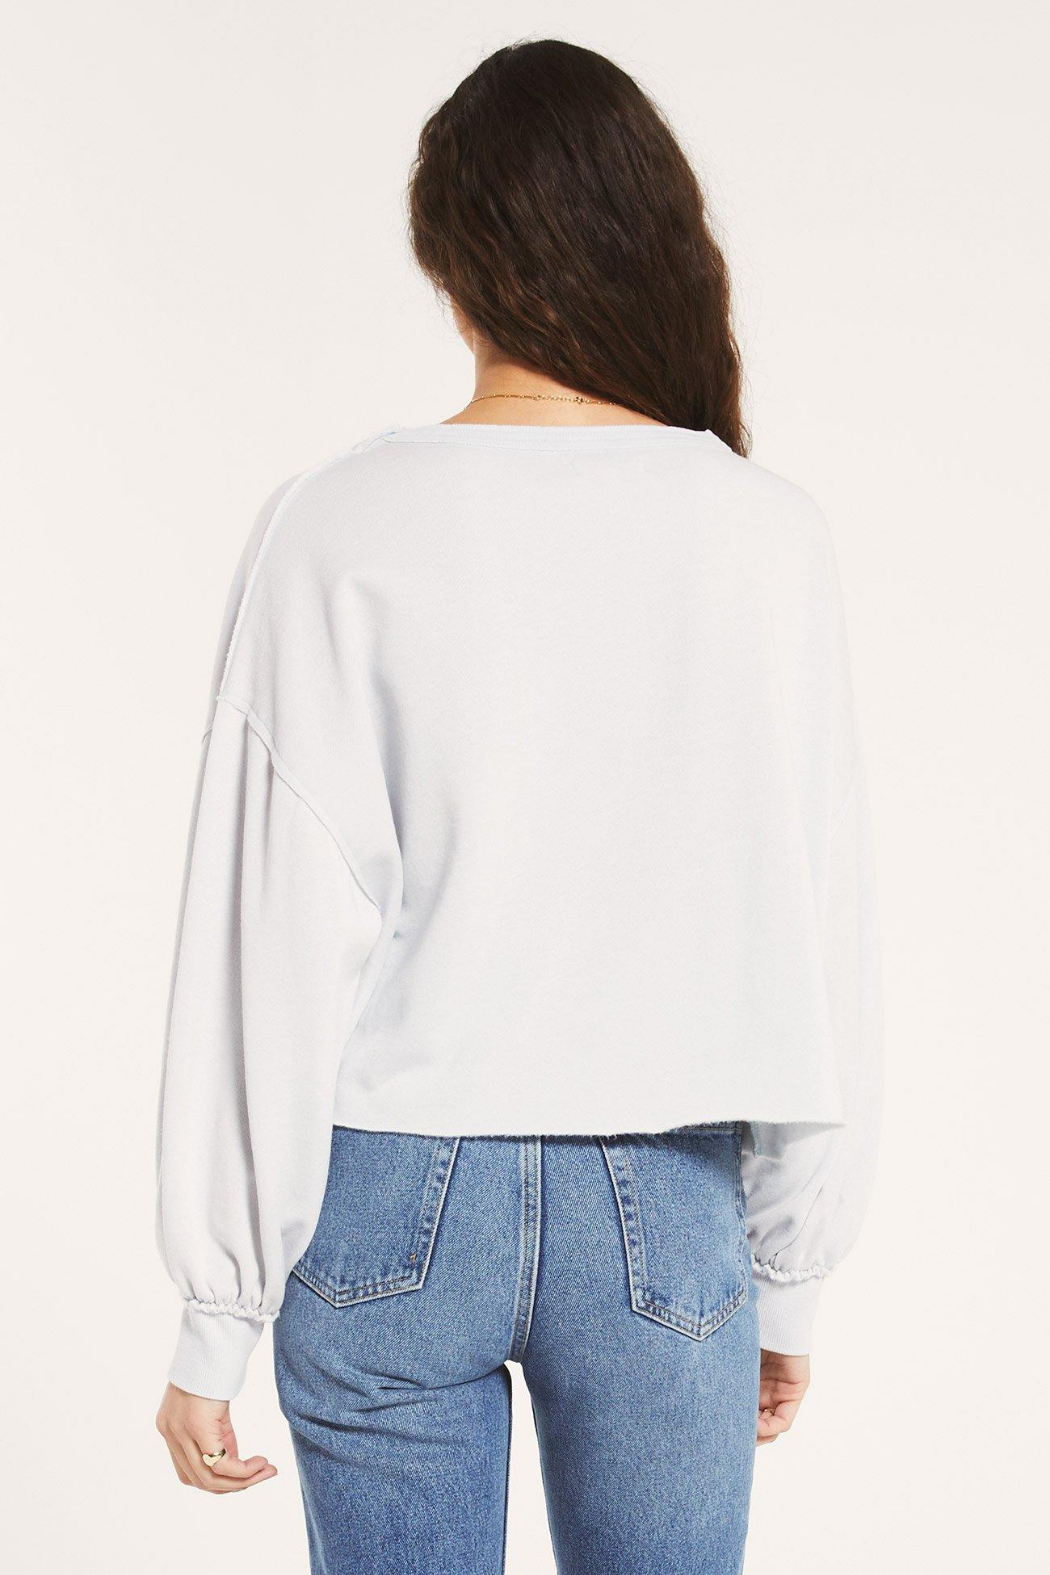 Z Supply  Tempest Cozy Sweatshirt - Side Cropped Image